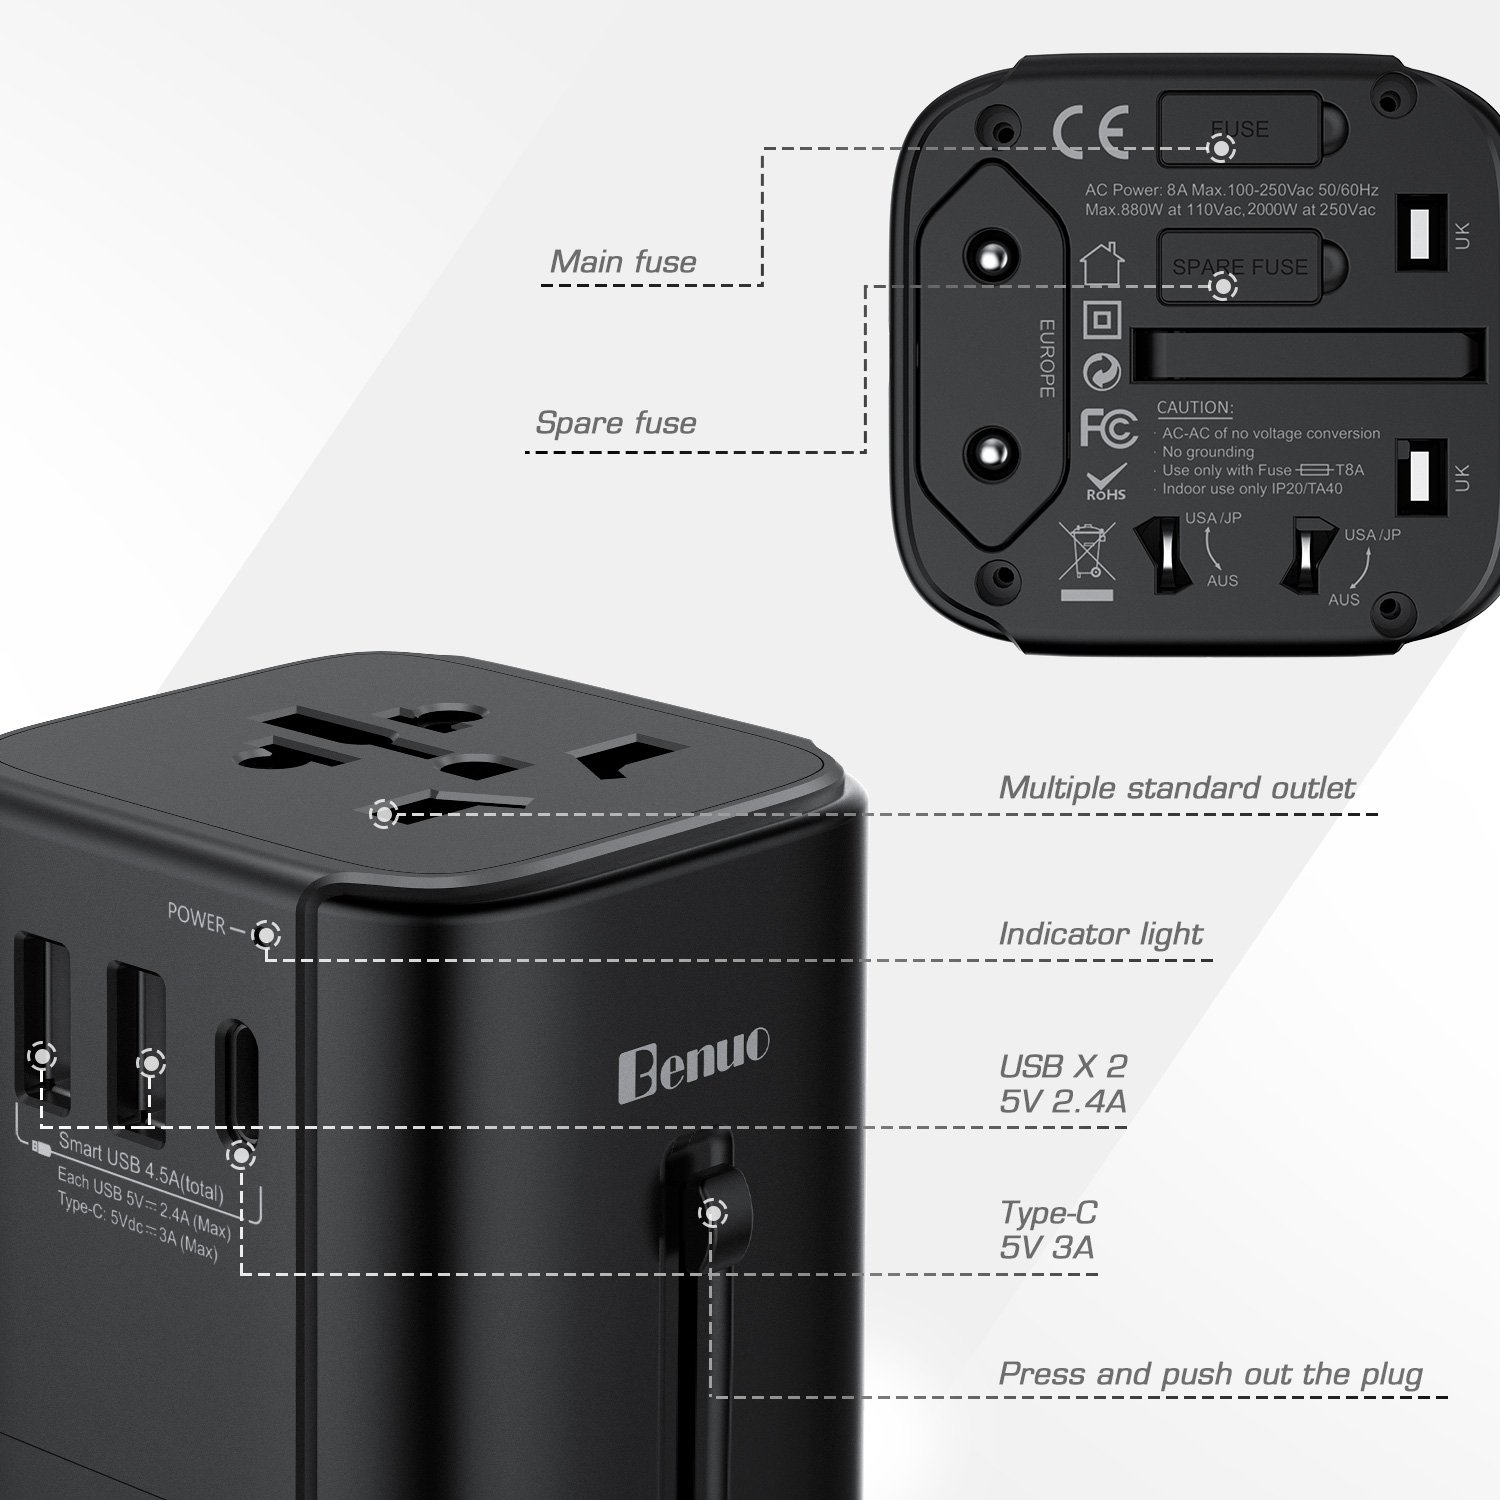 Amazon.com: Benuo Universal Travel Adapter, All-in-one Worldwide AC ...